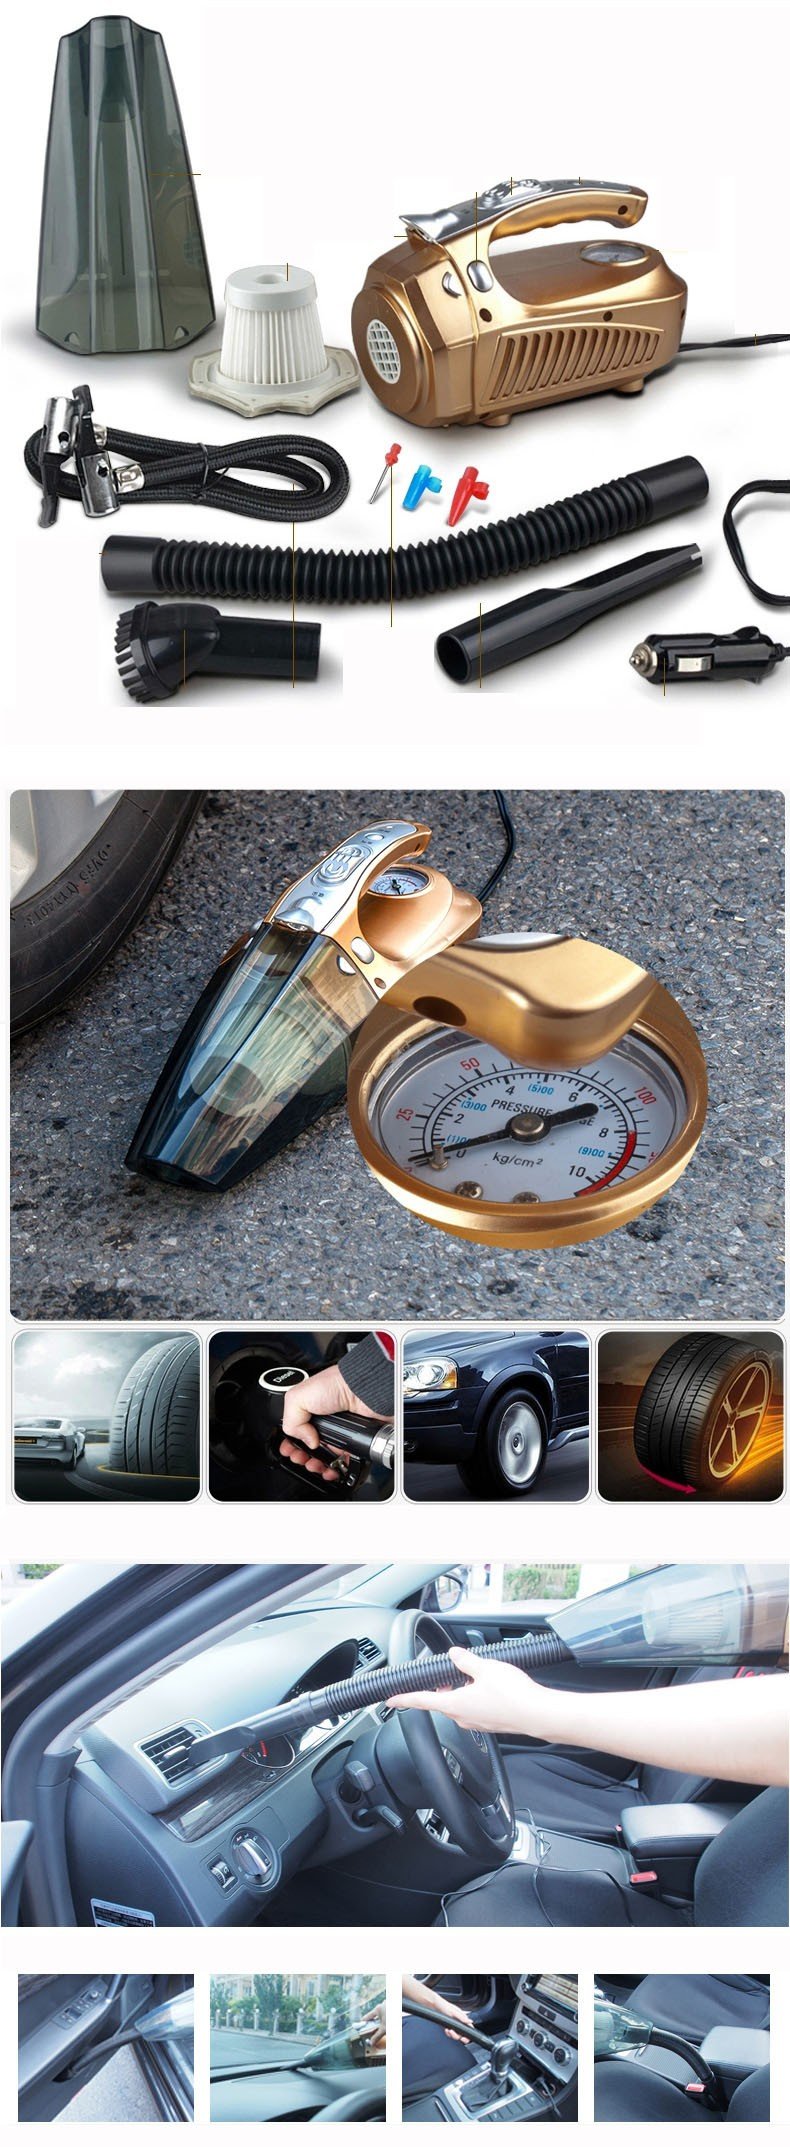 2017 Newest Portable Car Vacuum Cleaner 12V 4 IN 1 High-Power Wet & Dry Dual-use Super Suction dust buster With Inflatable Pump